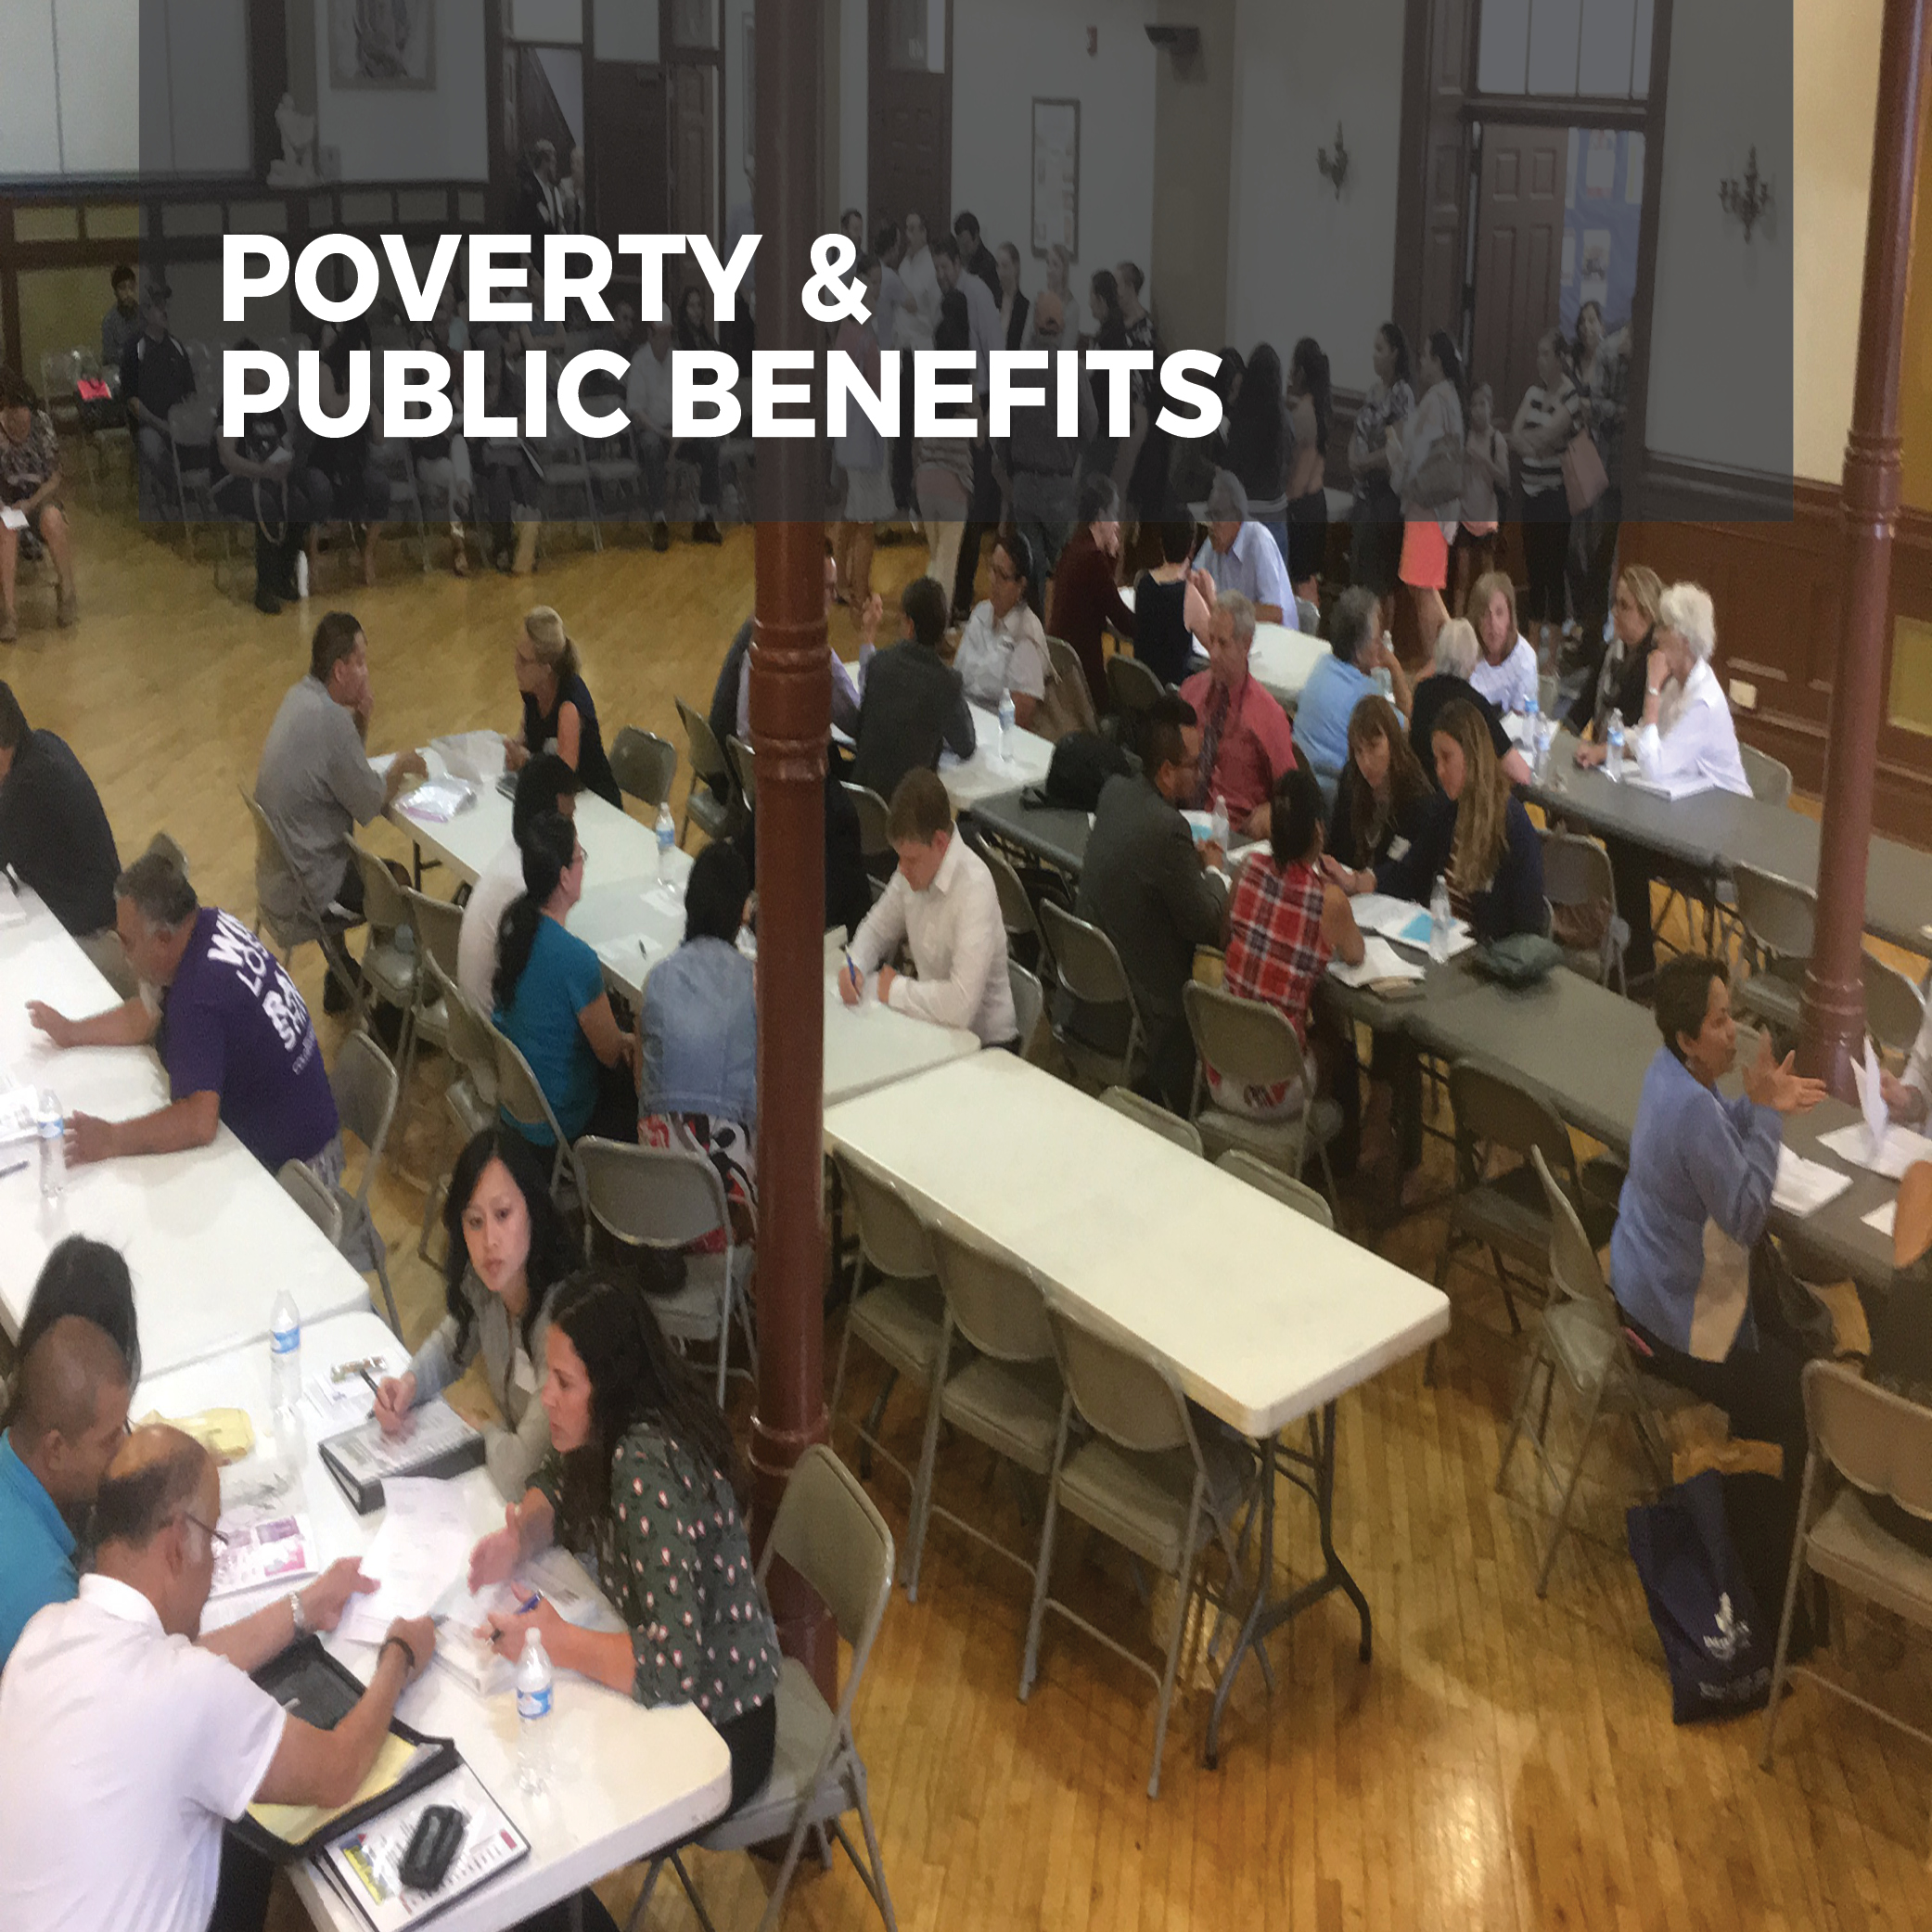 Poverty & Public Benefits